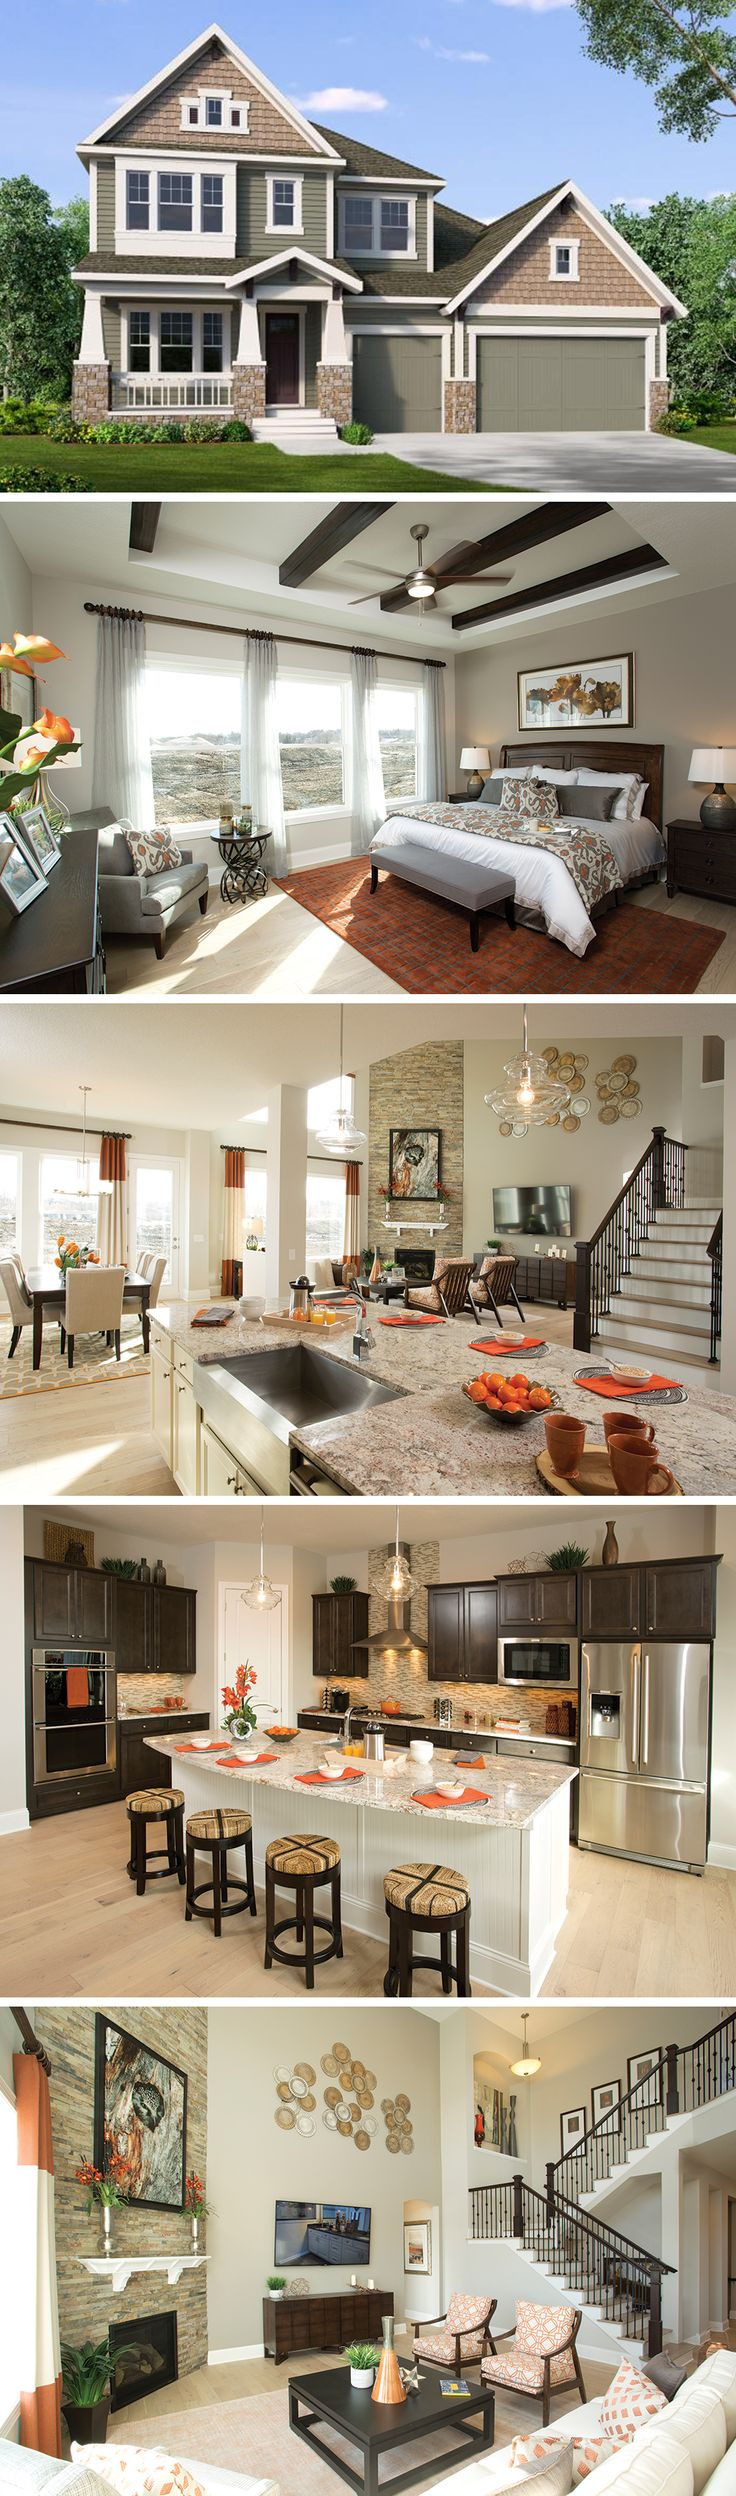 The Carrollwood by David Weekley Homes in Pines at Elmcreek Community is a classic floorplan that features a front porch, a large owners retreat with tray ceilings, and a large finished basement. Custom home upgrades include various basement adjustments, a wet bar, or a deck in the backyard.